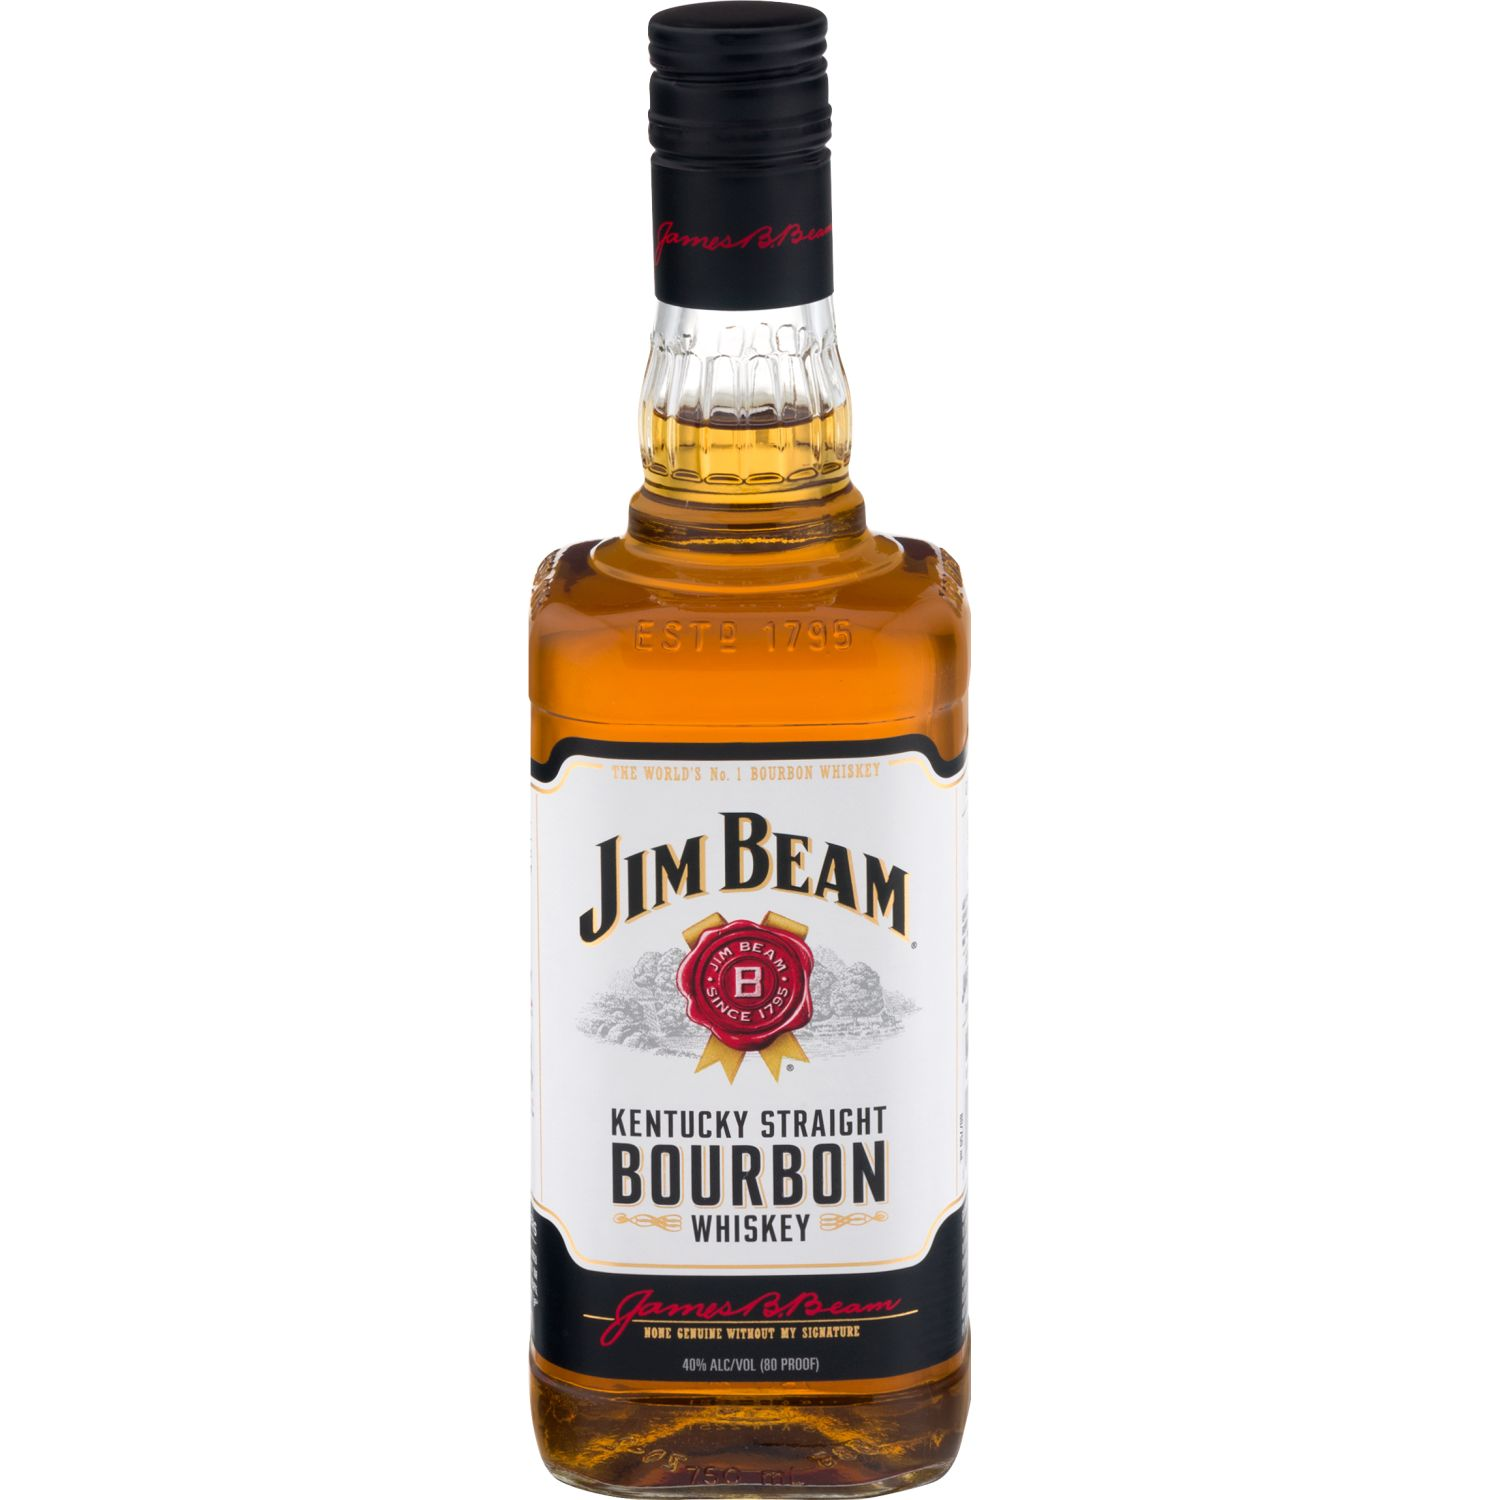 JIM BEAM Whisky Jim Beam White X 750ml Sin color Whisky y escocés